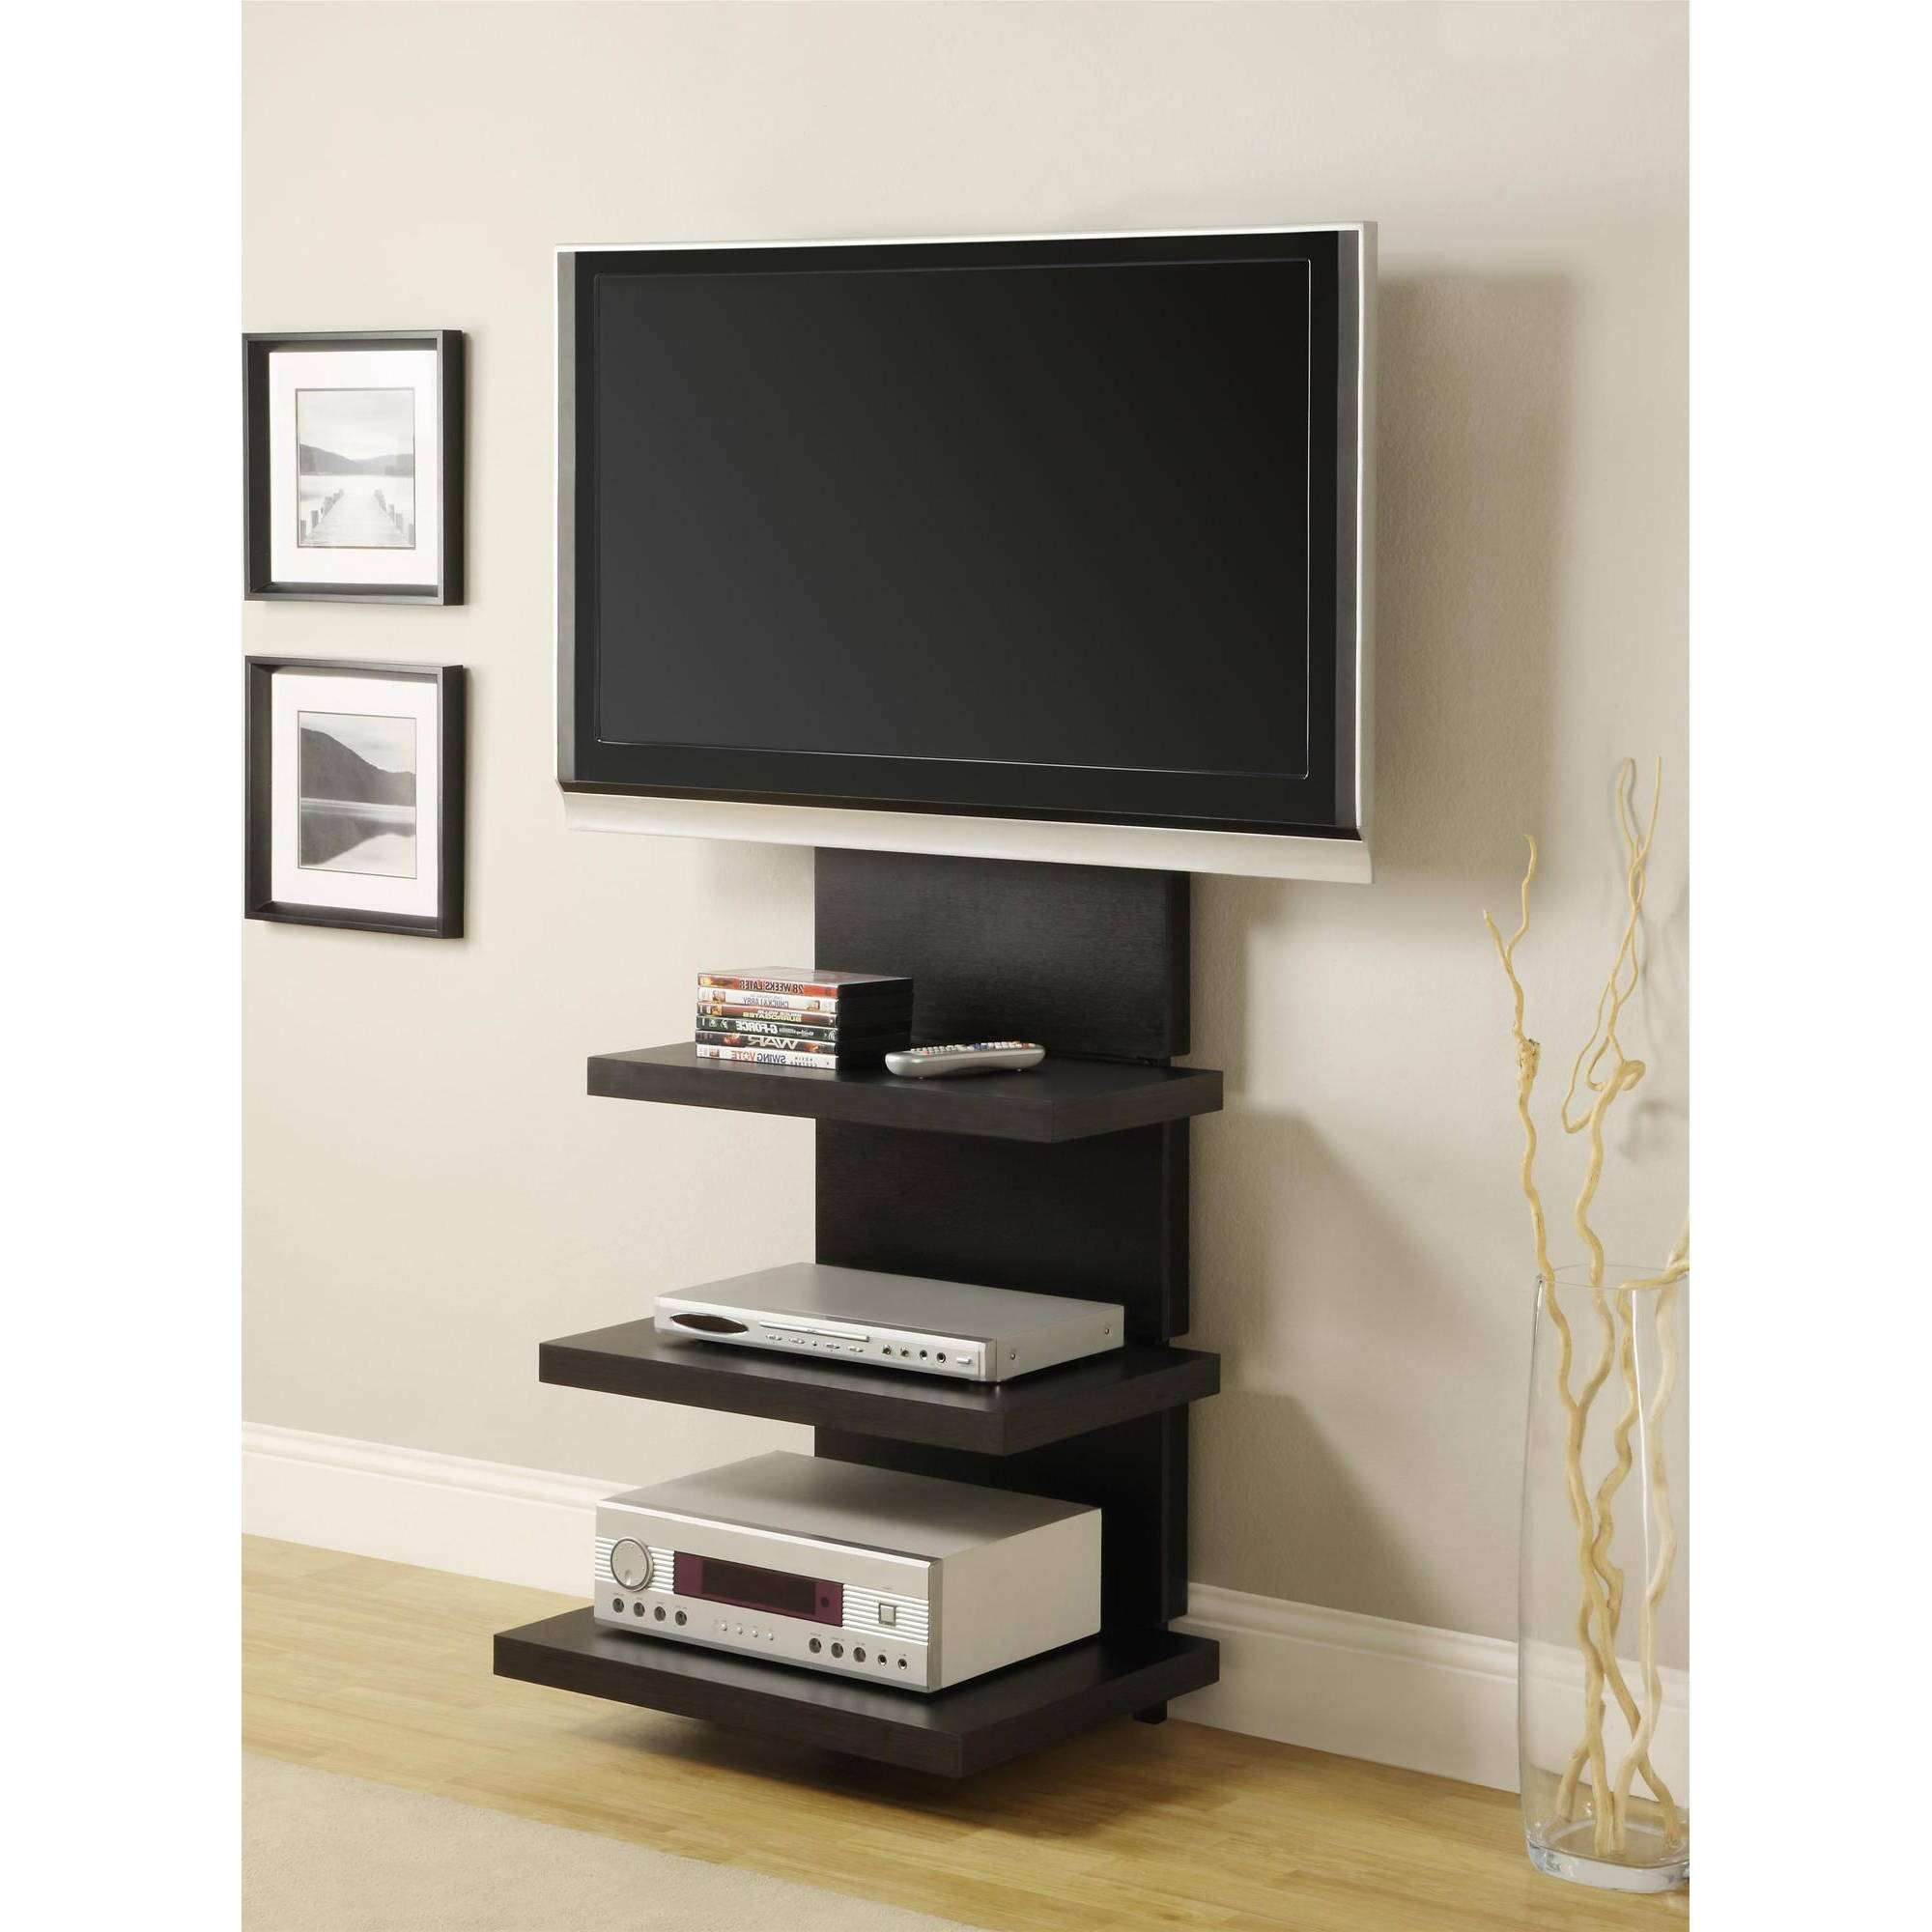 Ameriwood Home Elevation Altramount Tv Stand For Tvs Up To 60 Within Tall Black Tv Cabinets (View 1 of 20)